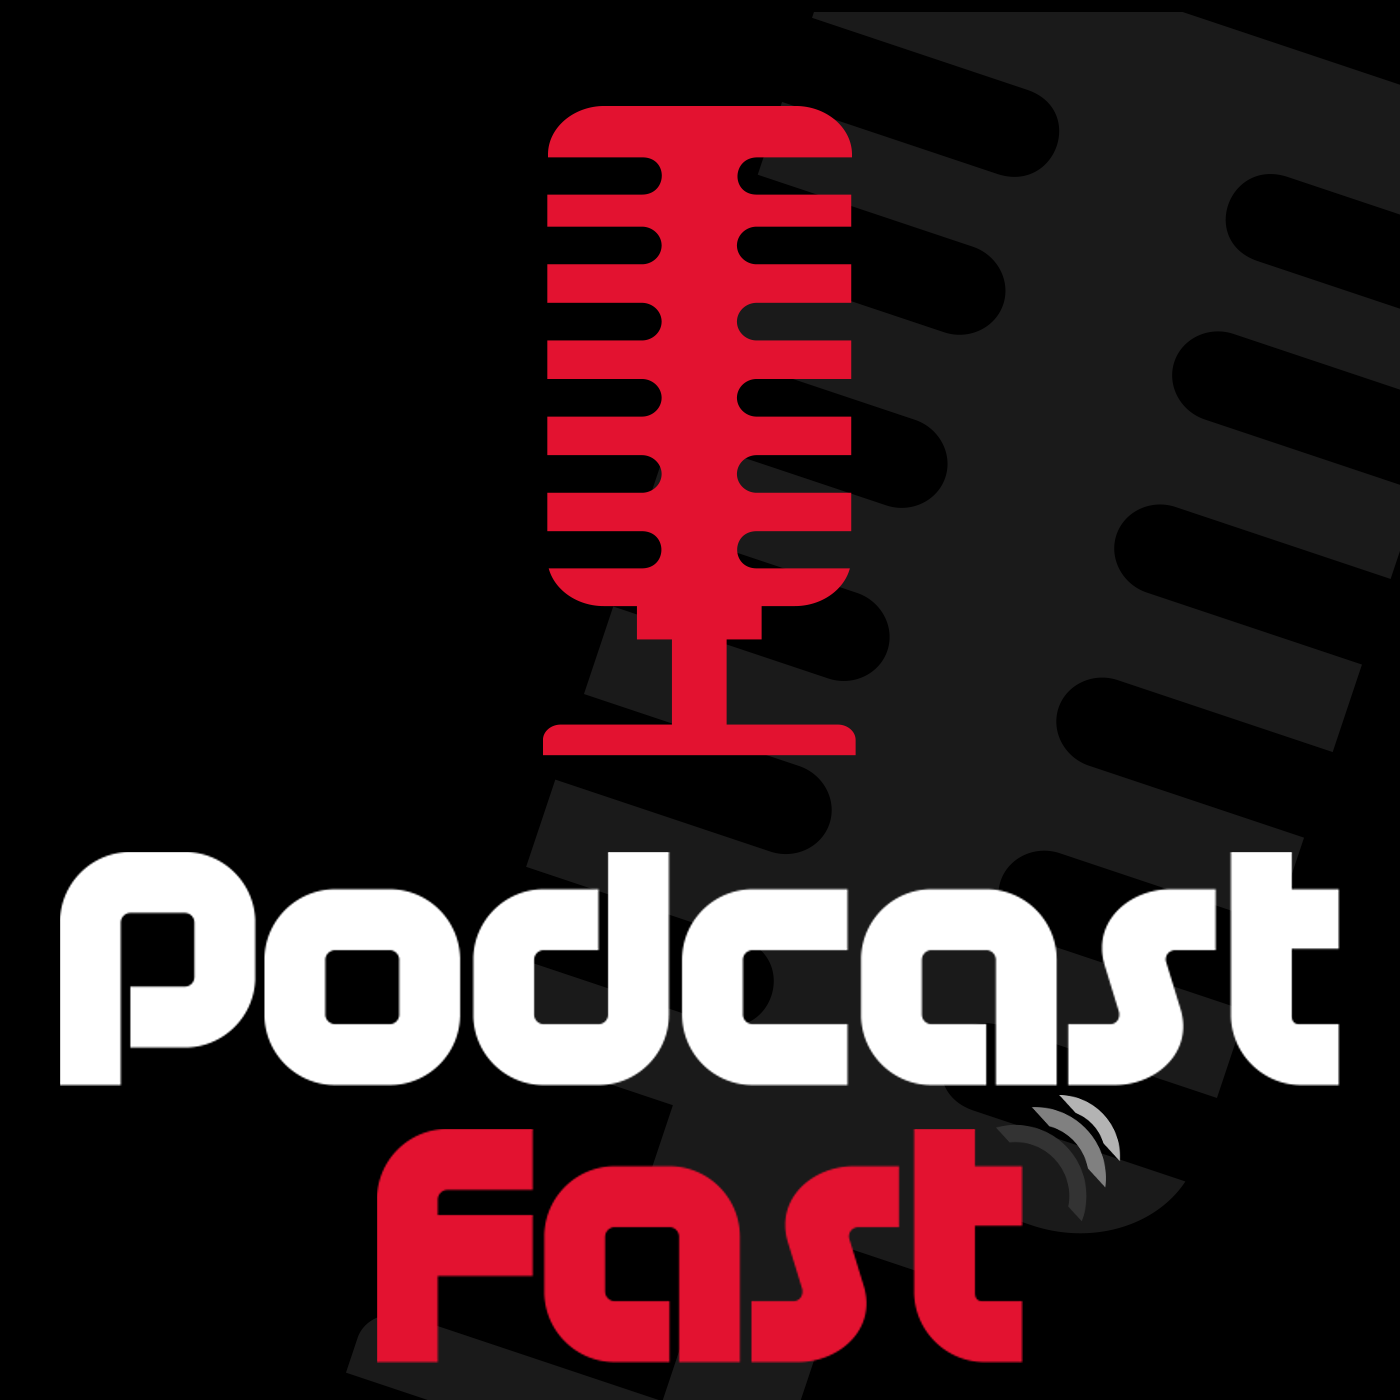 Podcast Fast: How To Run A Successful Podcast